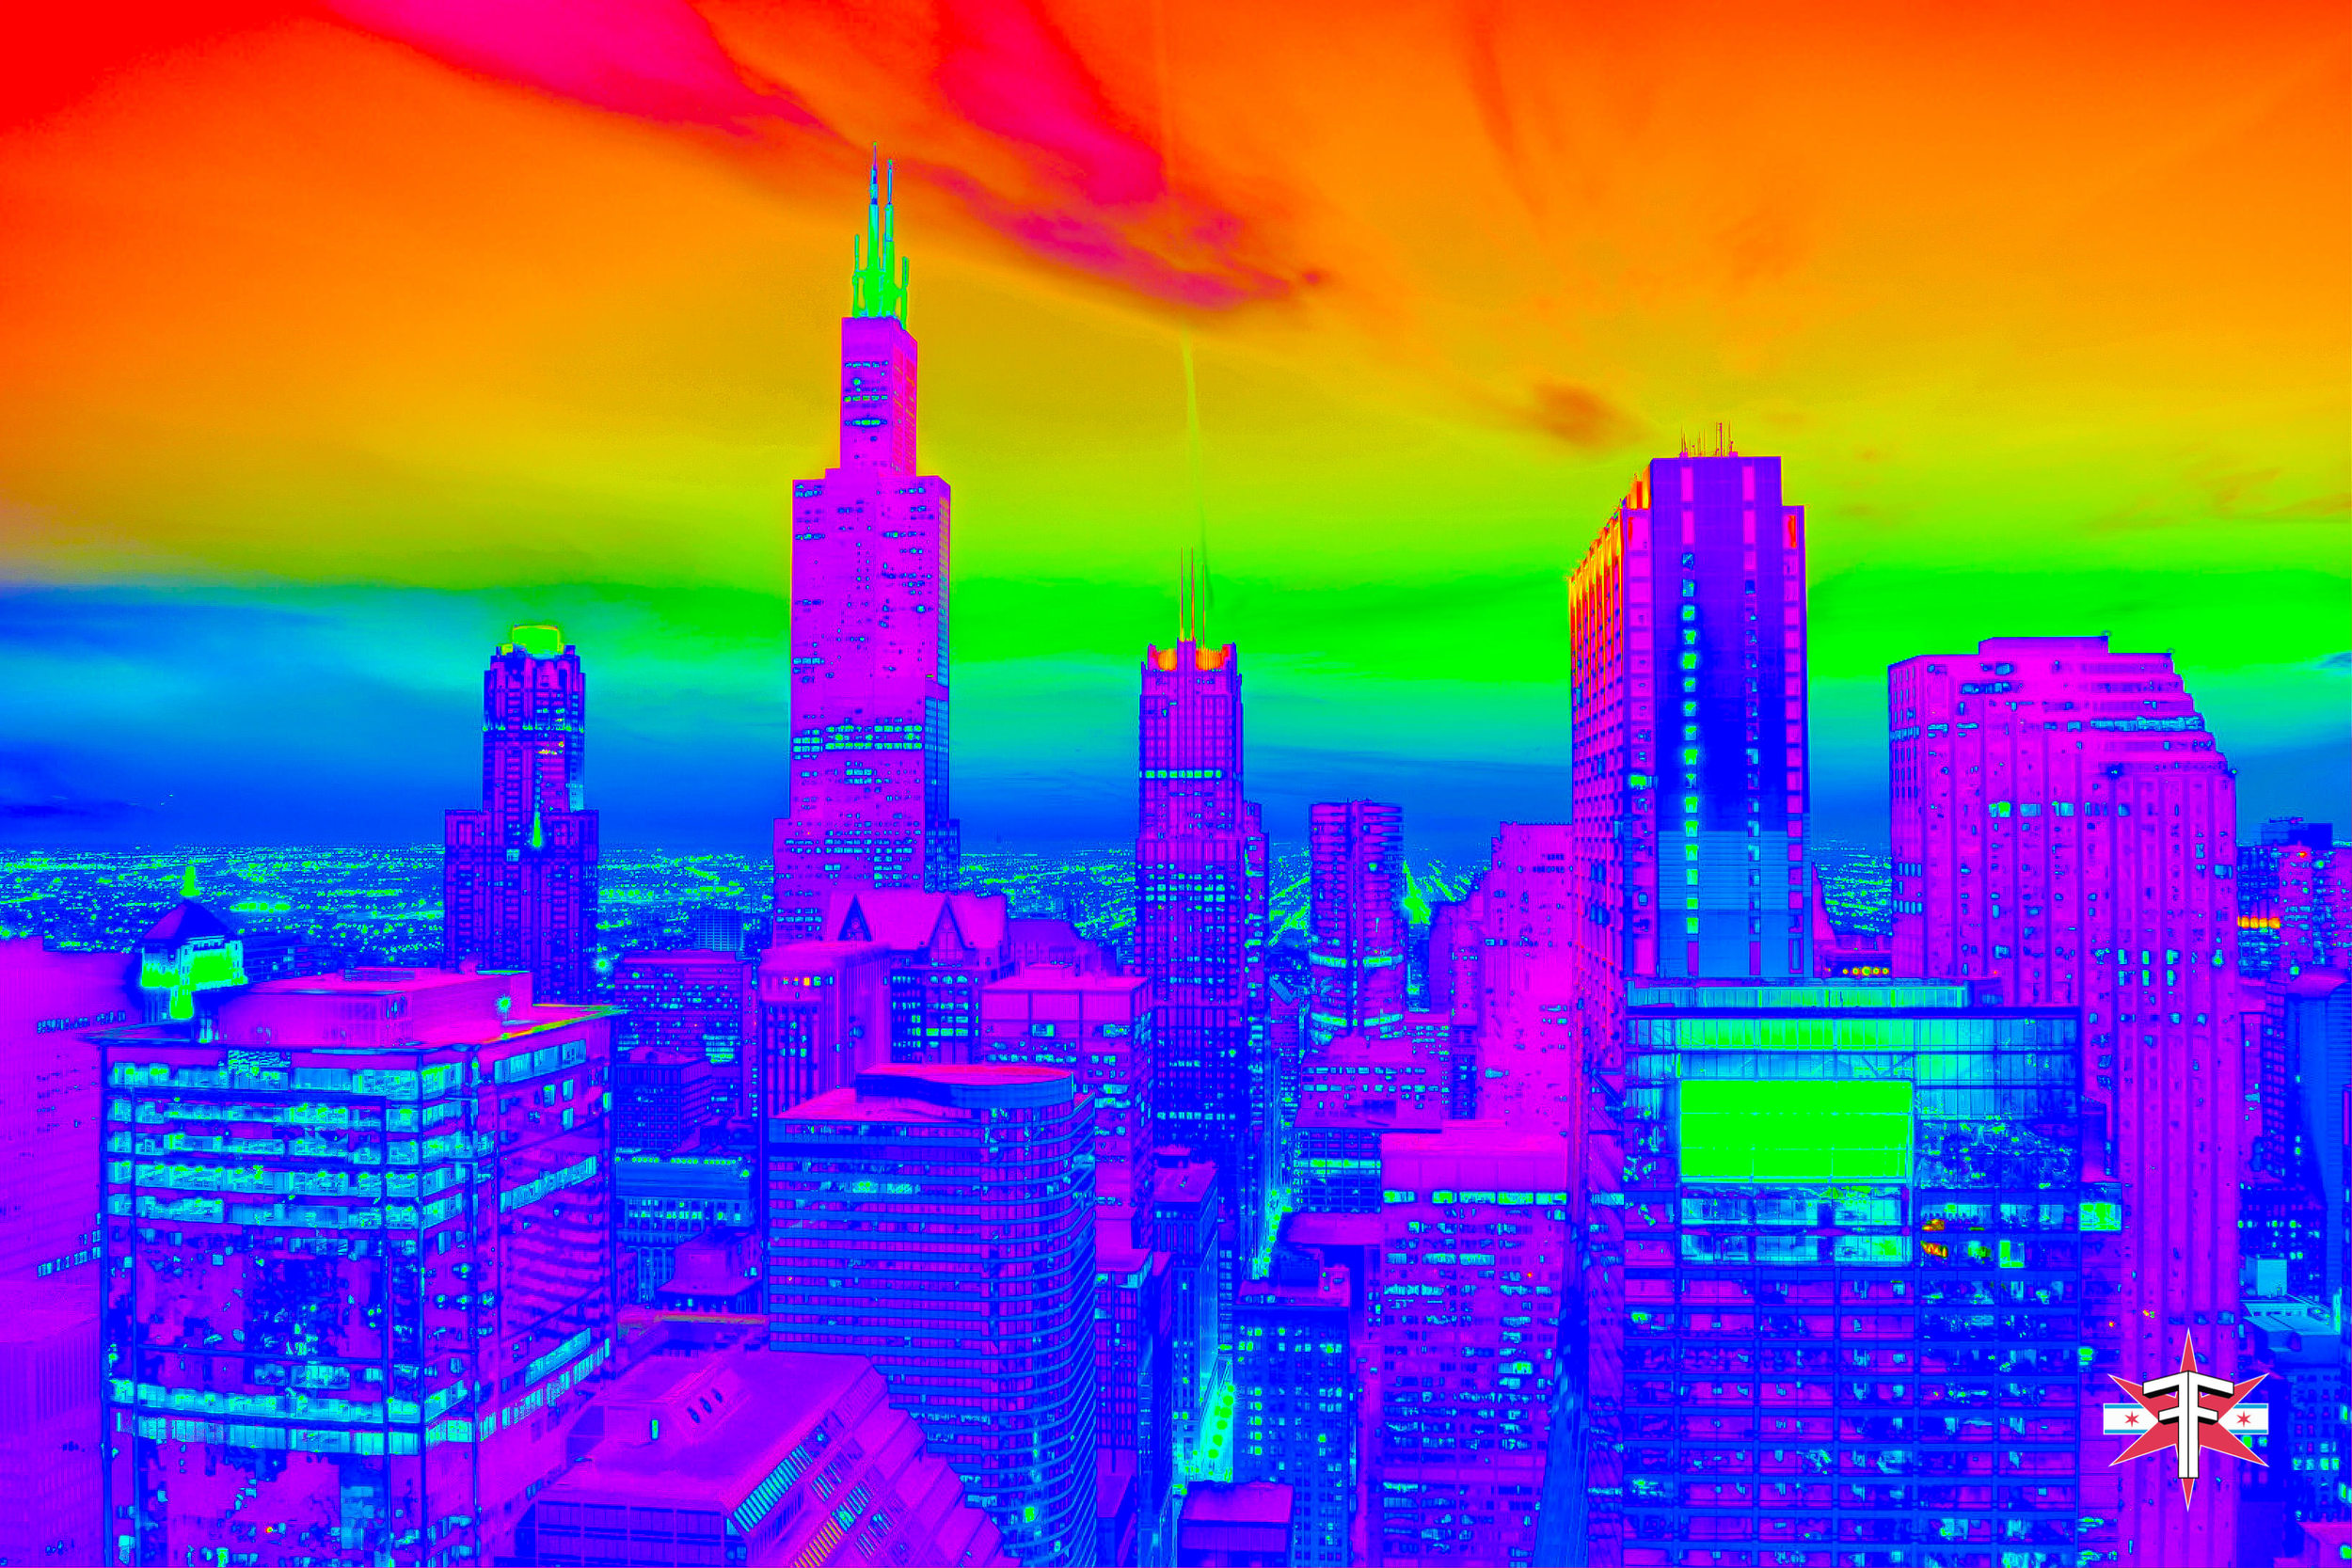 chicago art abstract eric formato photography color travel cityscape architecture saturated citycapes bright vibrant artistic-2.jpg